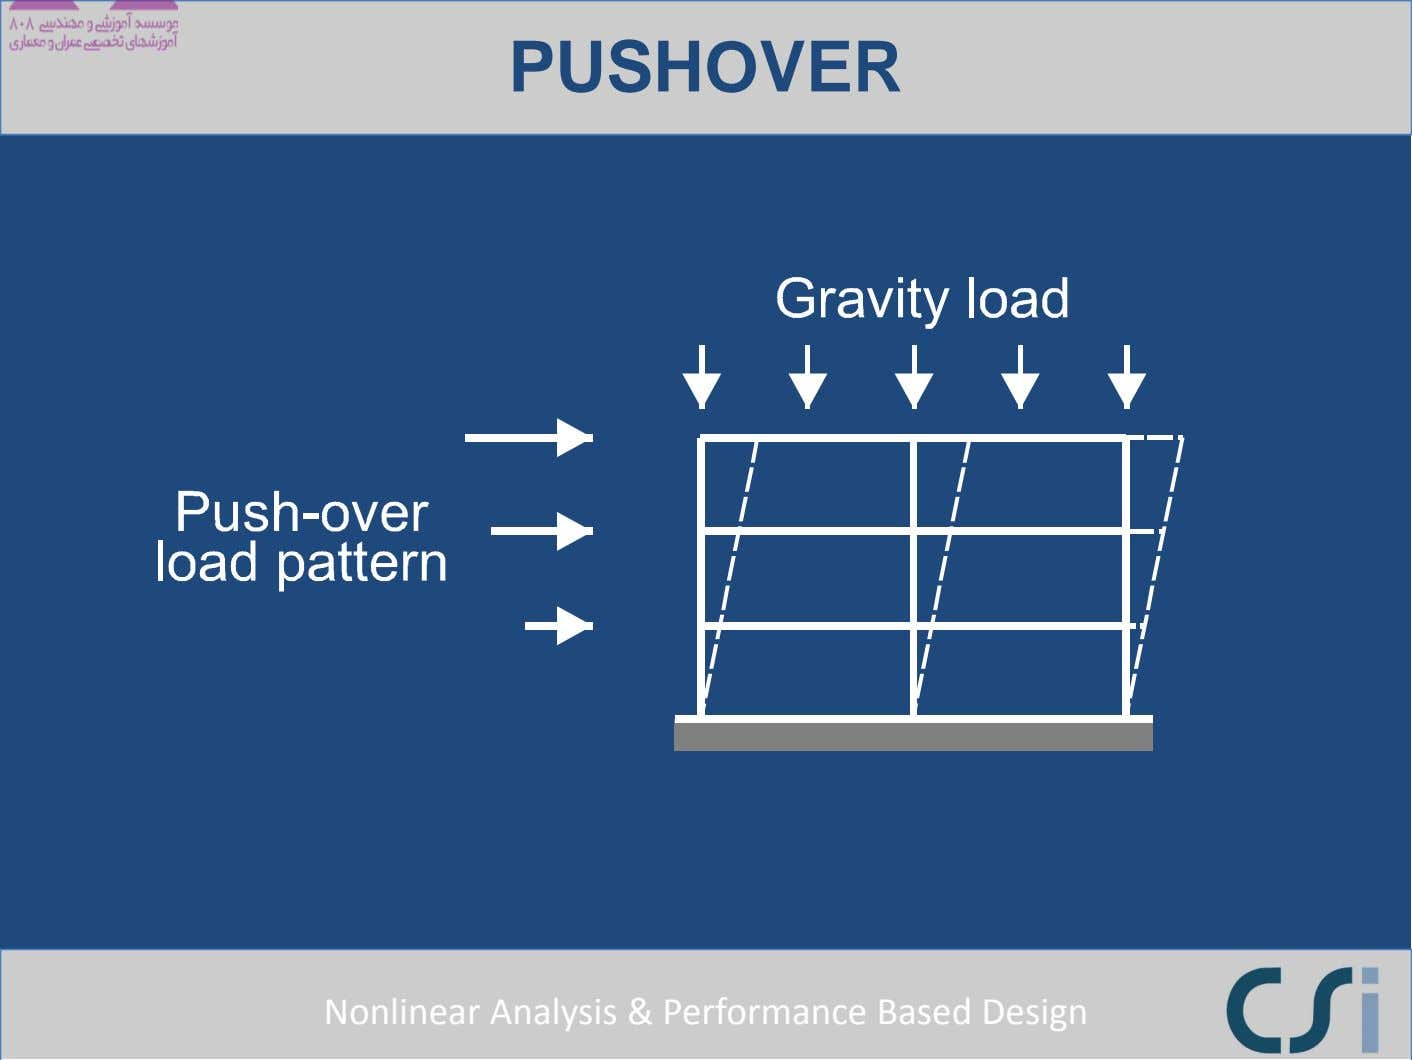 PUSHOVER Nonlinear Analysis & Performance Based Design